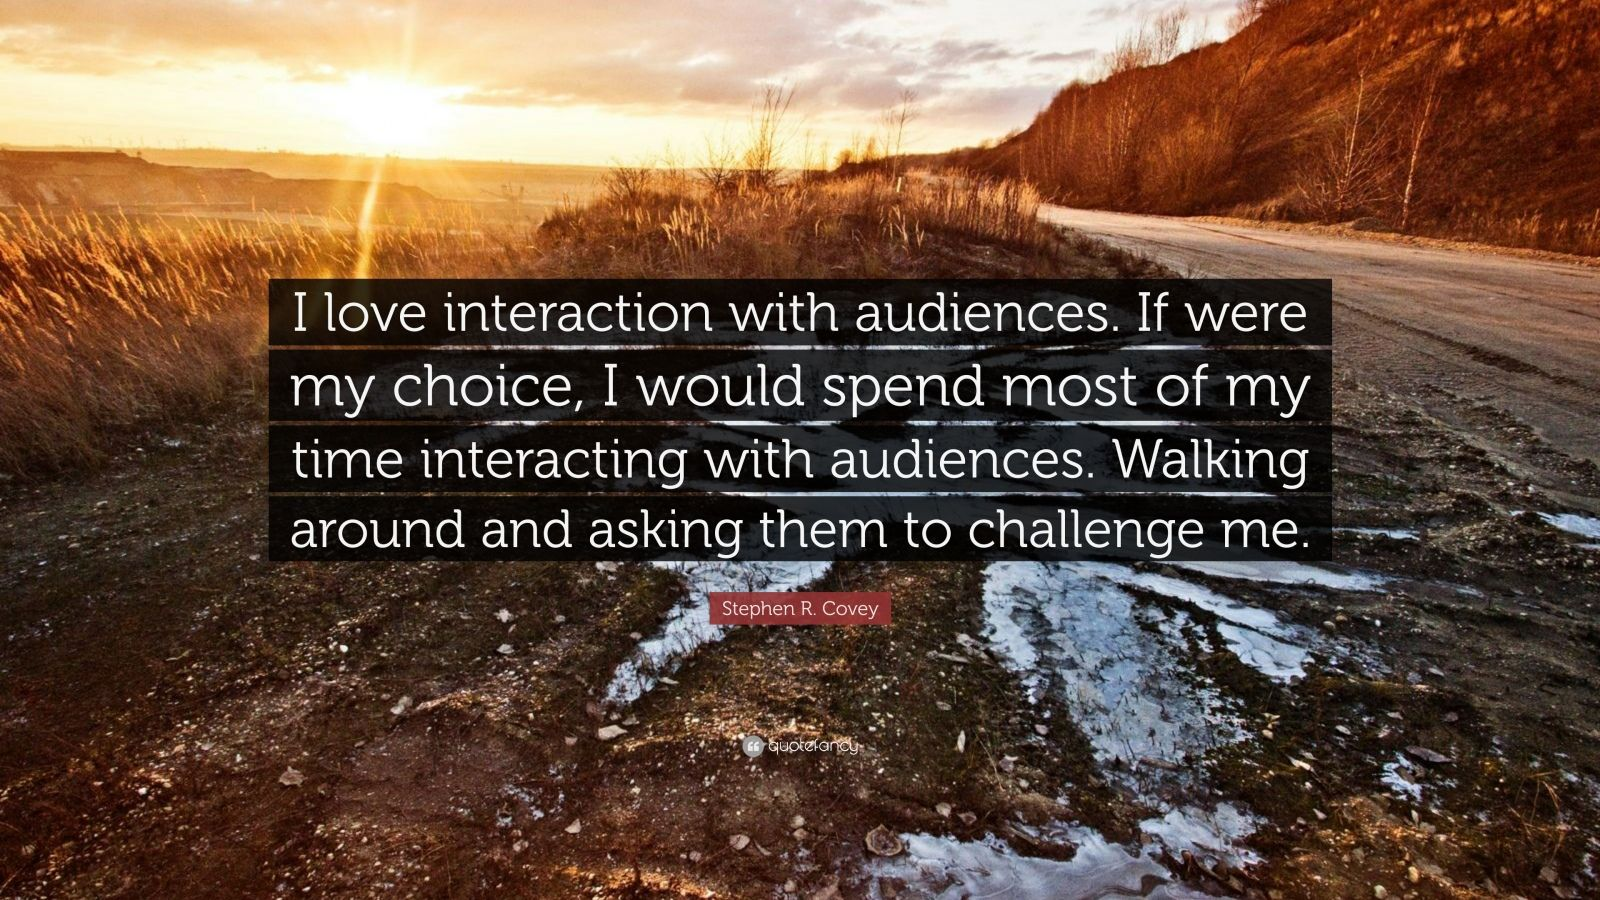 """Stephen R. Covey Quote: """"I love interaction with audiences. If were my choice, I would spend most of my time interacting with audiences. Walking around and asking them to challenge me."""""""